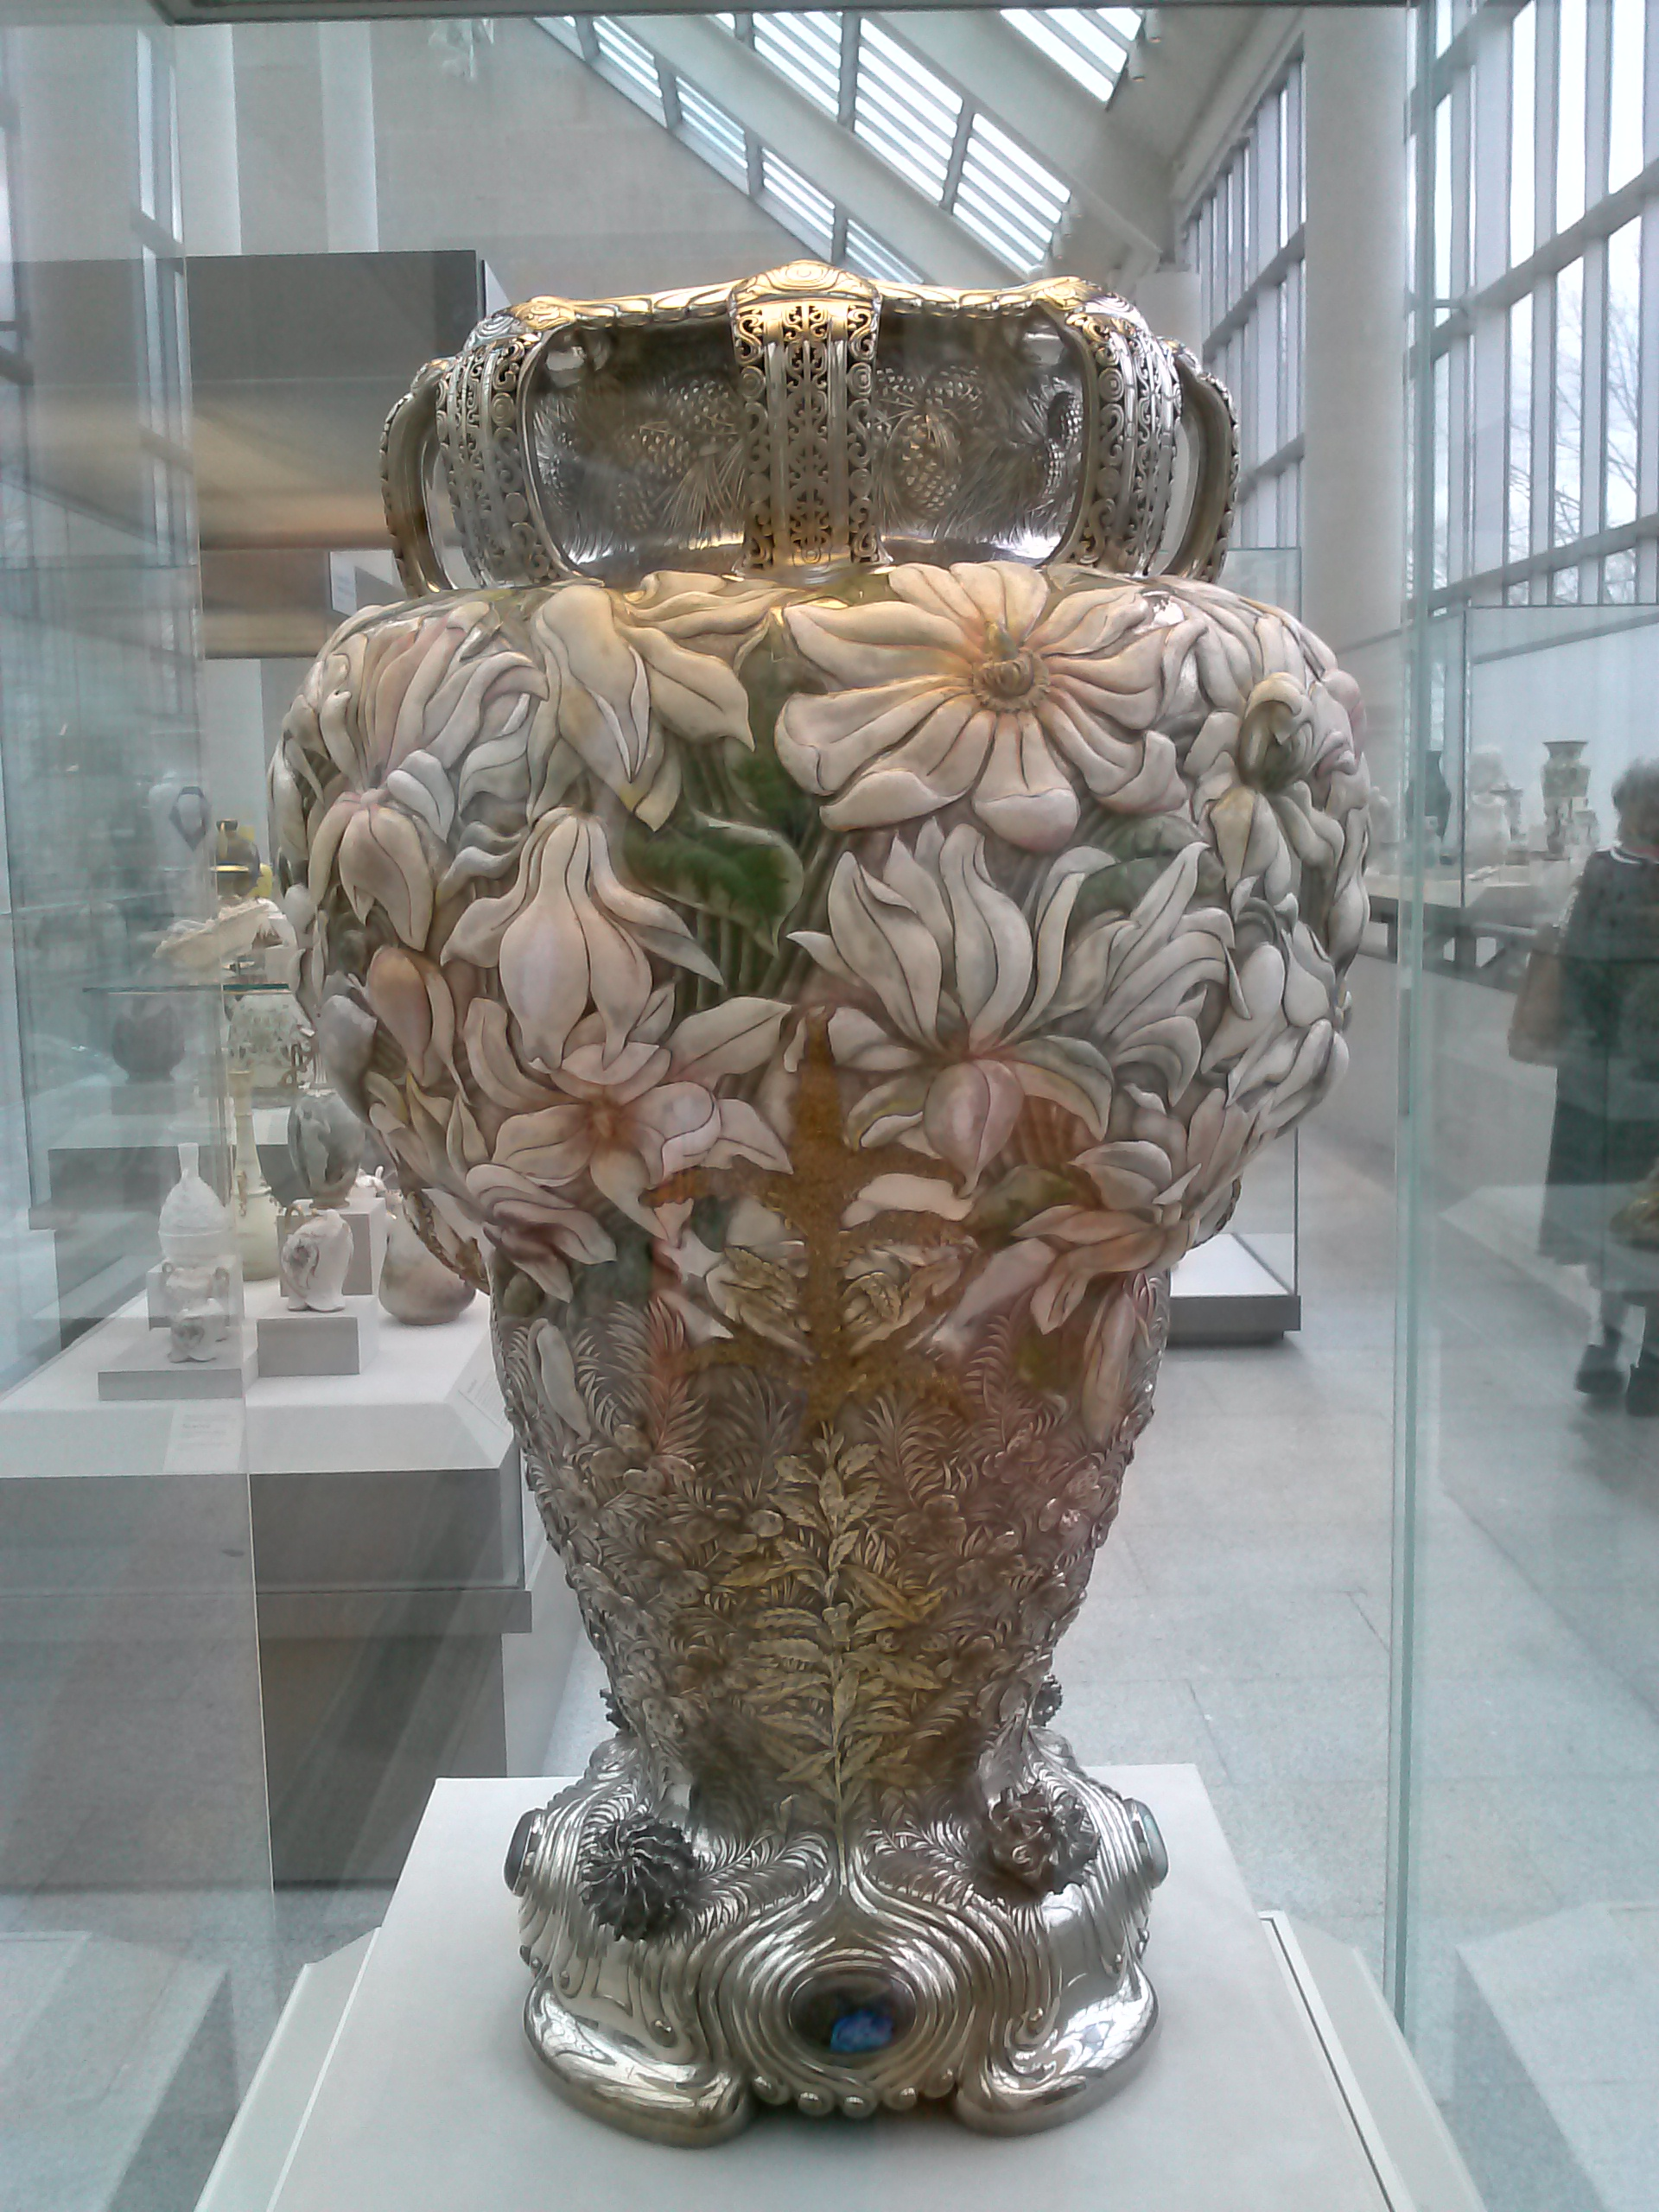 Tiffany co magnolia vase a place for learning magnolia vase tiffany co ca 1893 metropolitan museum of art reviewsmspy